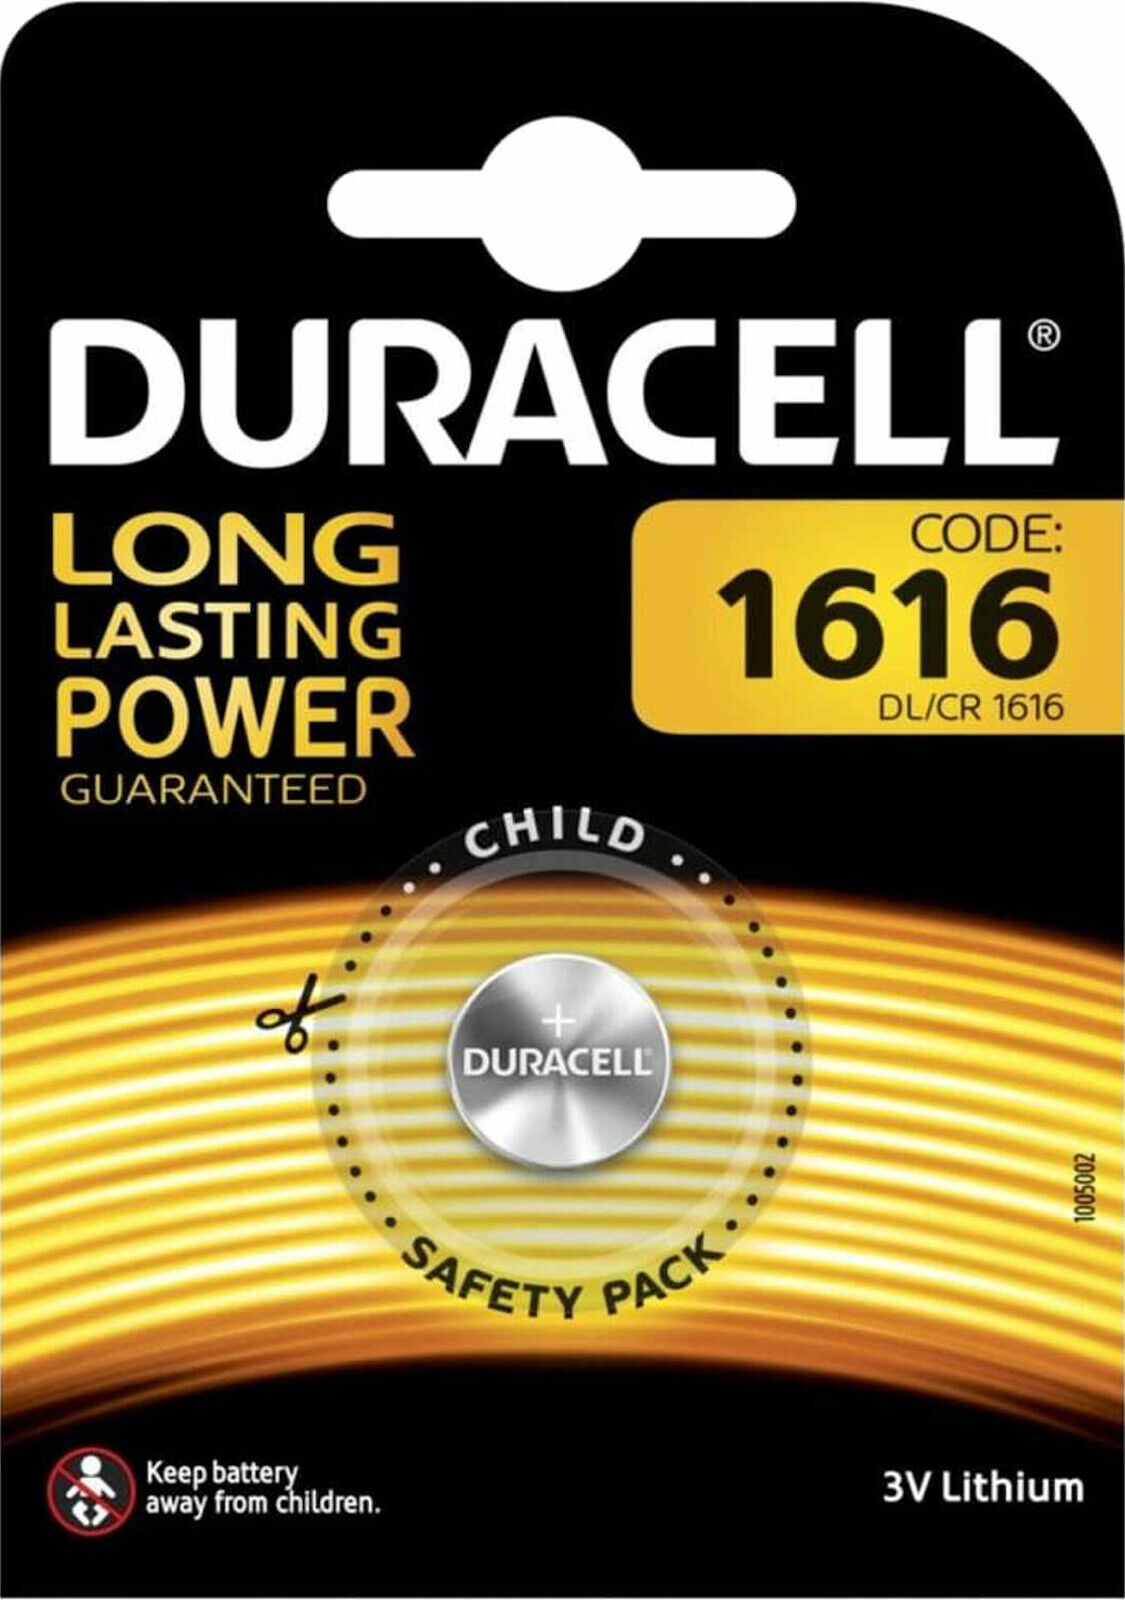 10x Duracell Lithium 3V Cell 1er Blister CR1616 Button Cell Lithium Coin DL1616